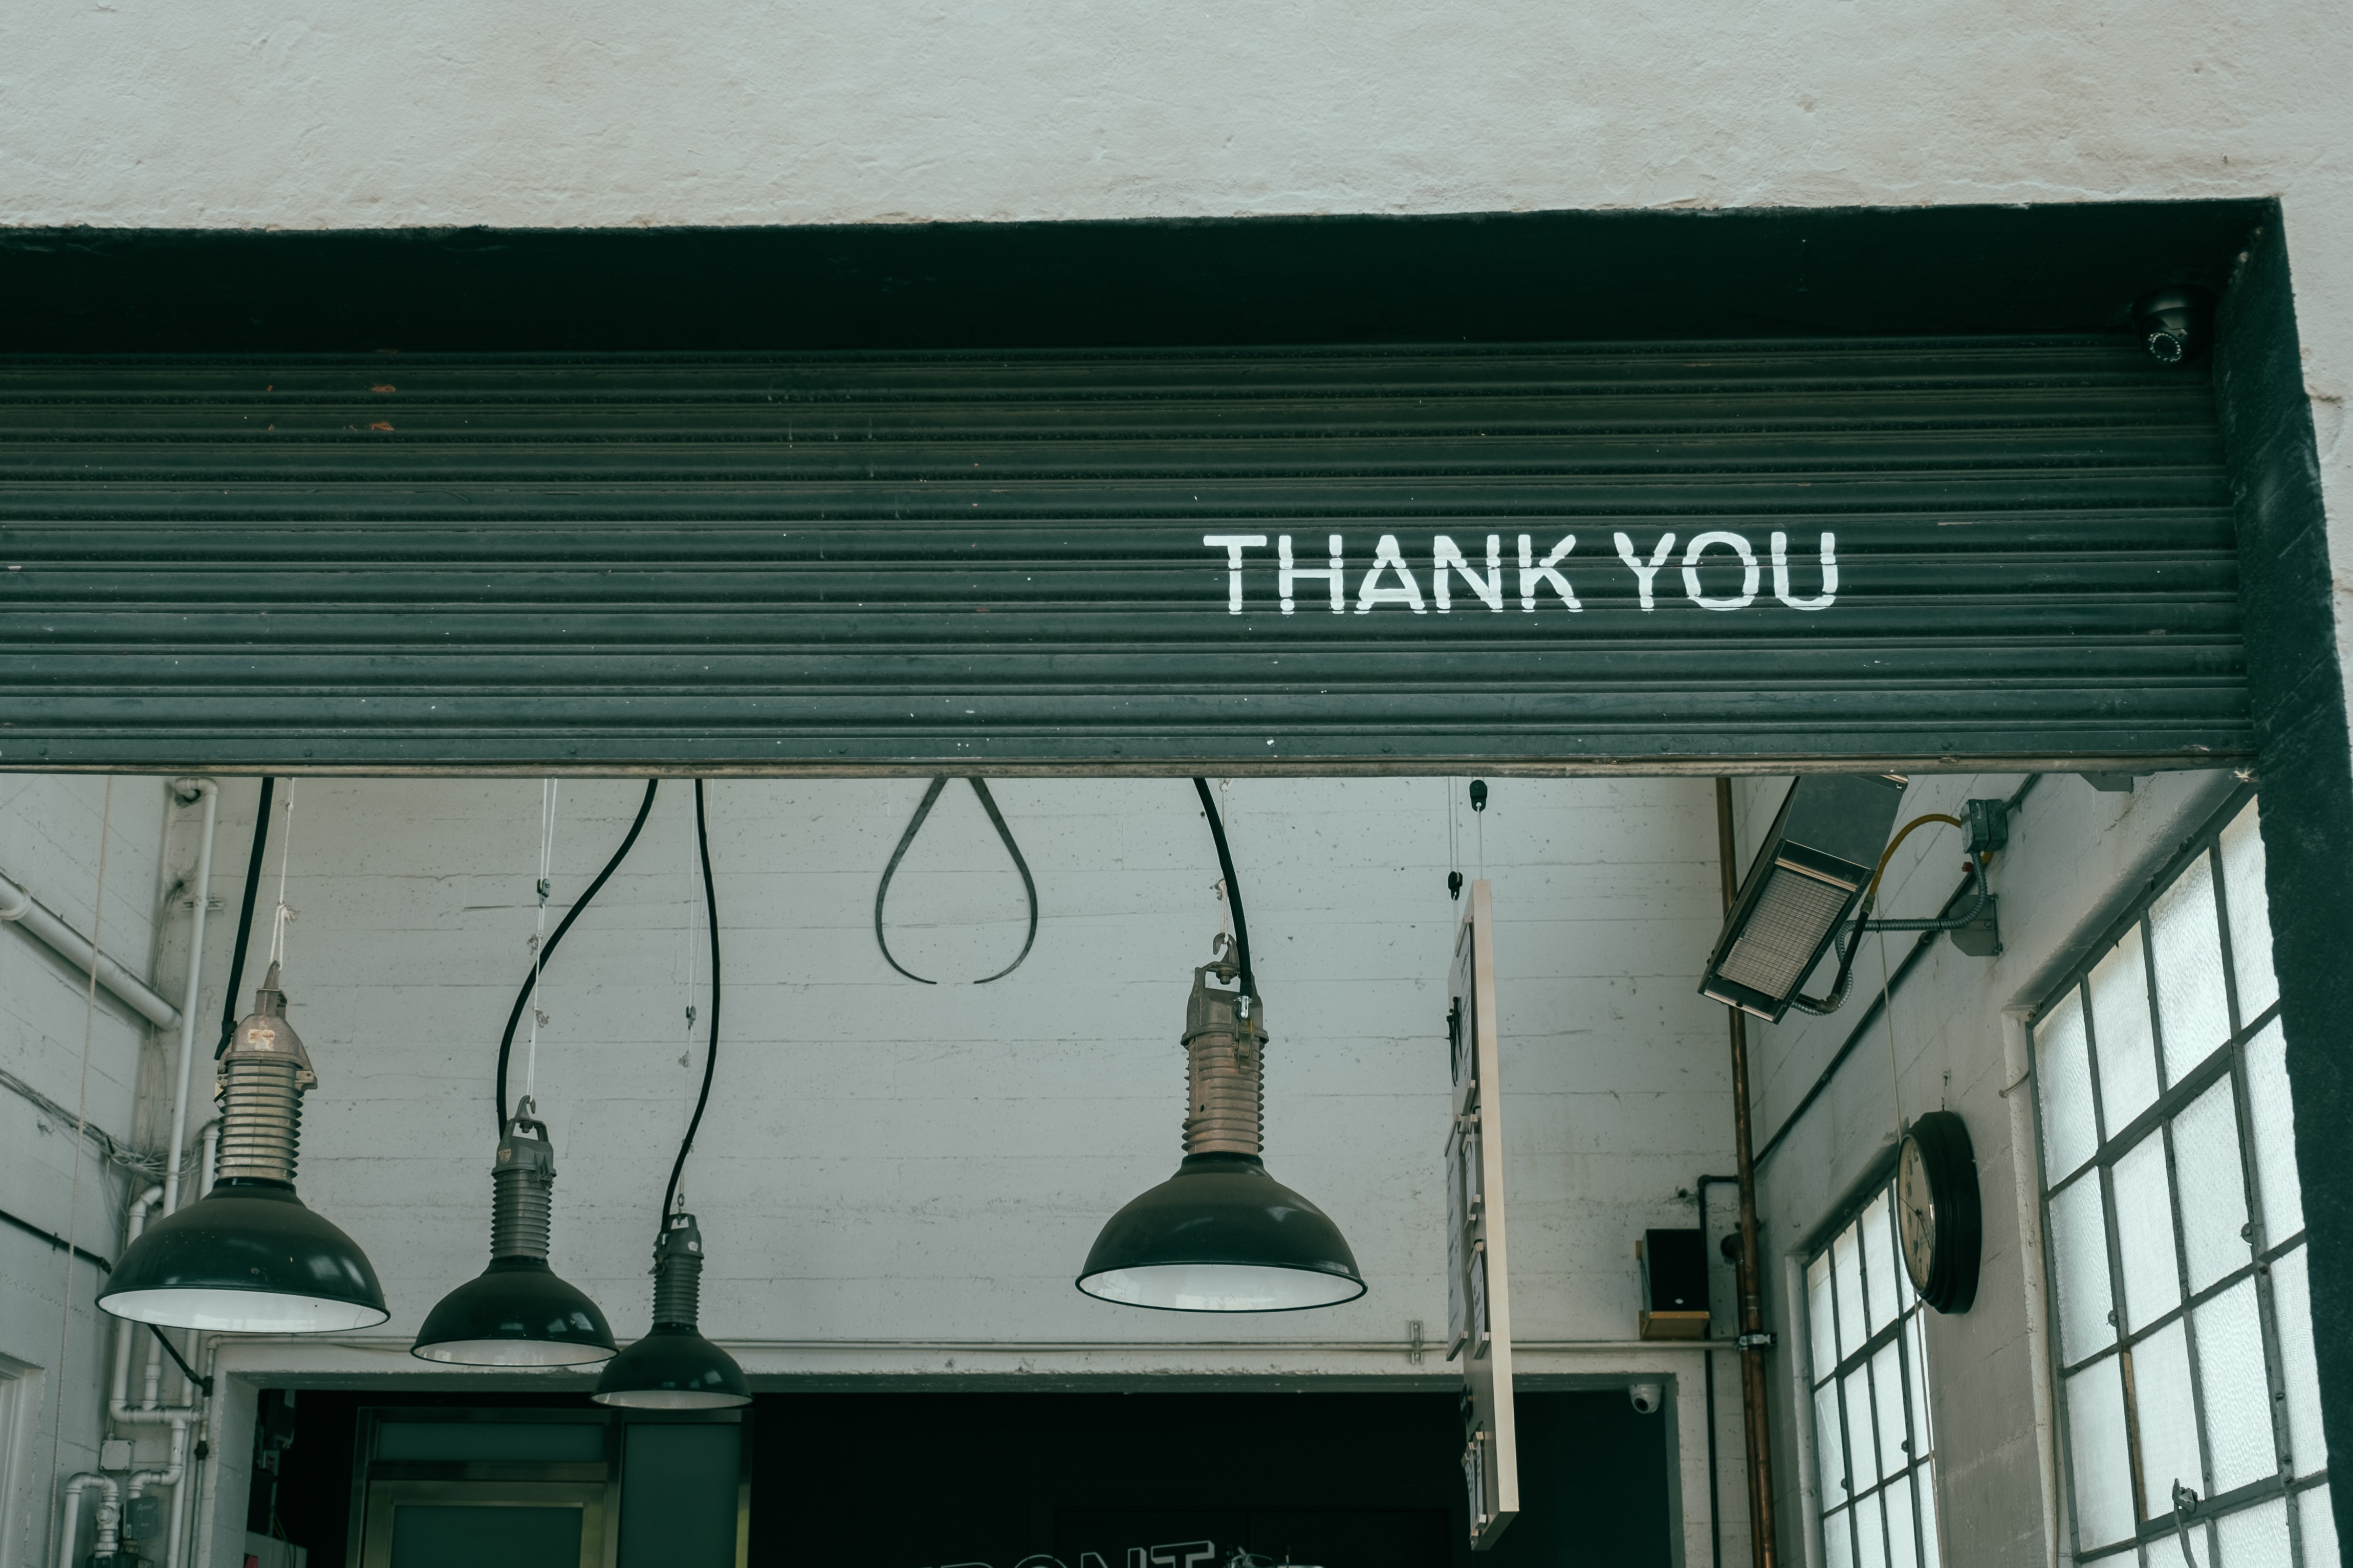 """Thank you"" written on a roll-up wall in an industrial building"